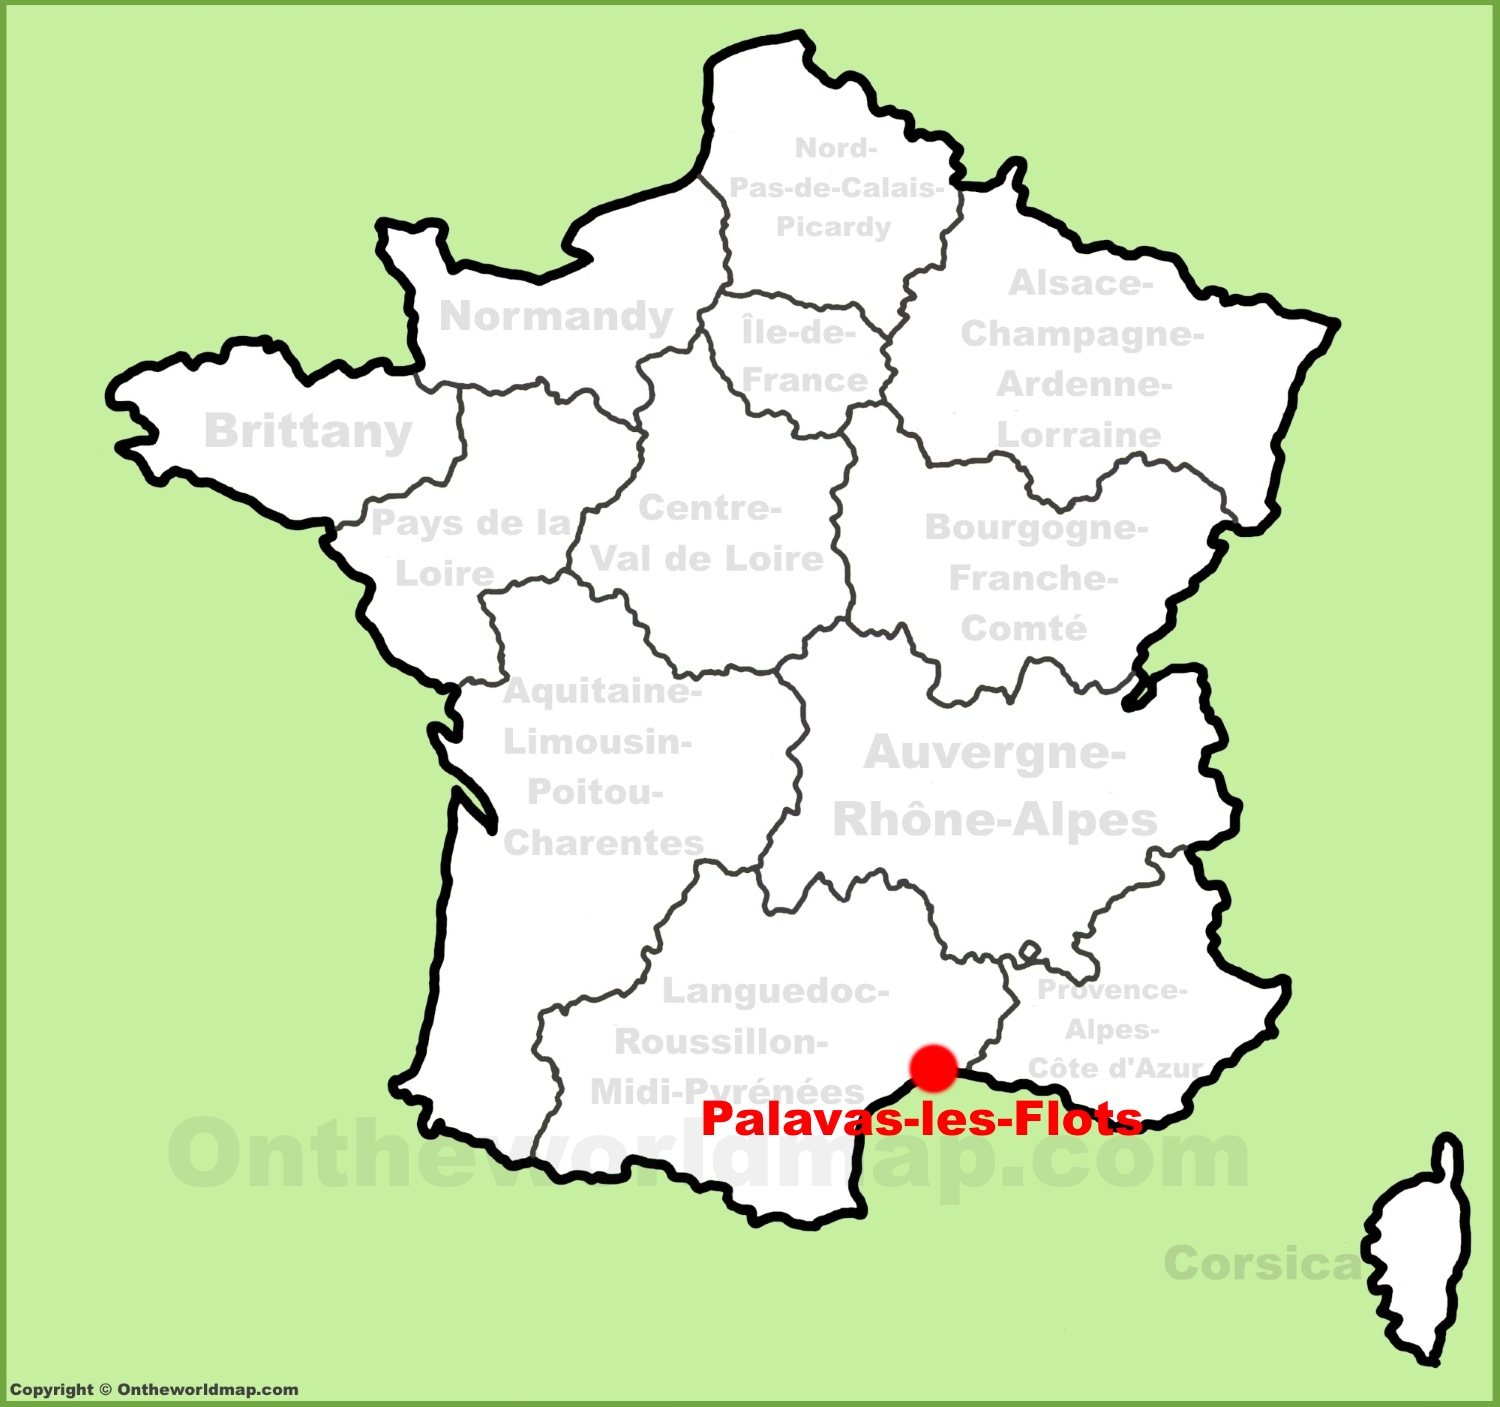 Les Location Palavas Les Flots Location On The France Map